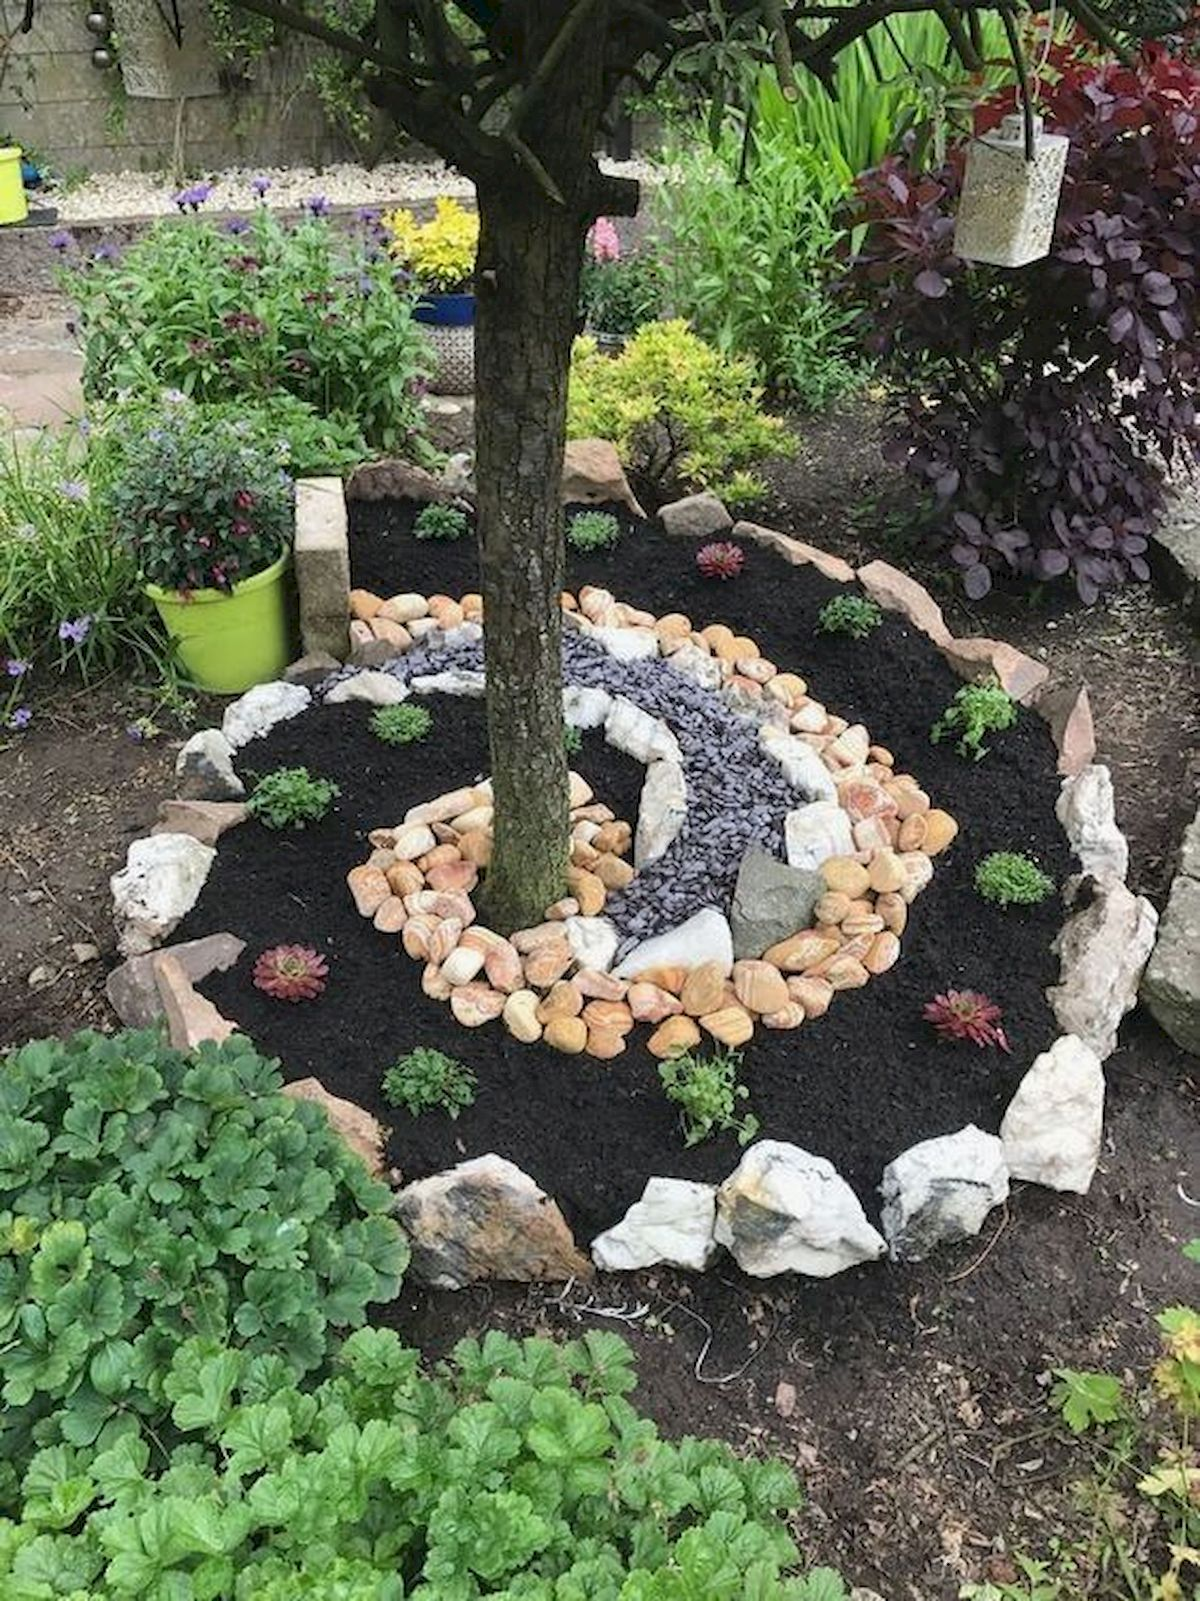 30 Amazing DIY for Garden Projects Ideas You Will Want to Save (9)